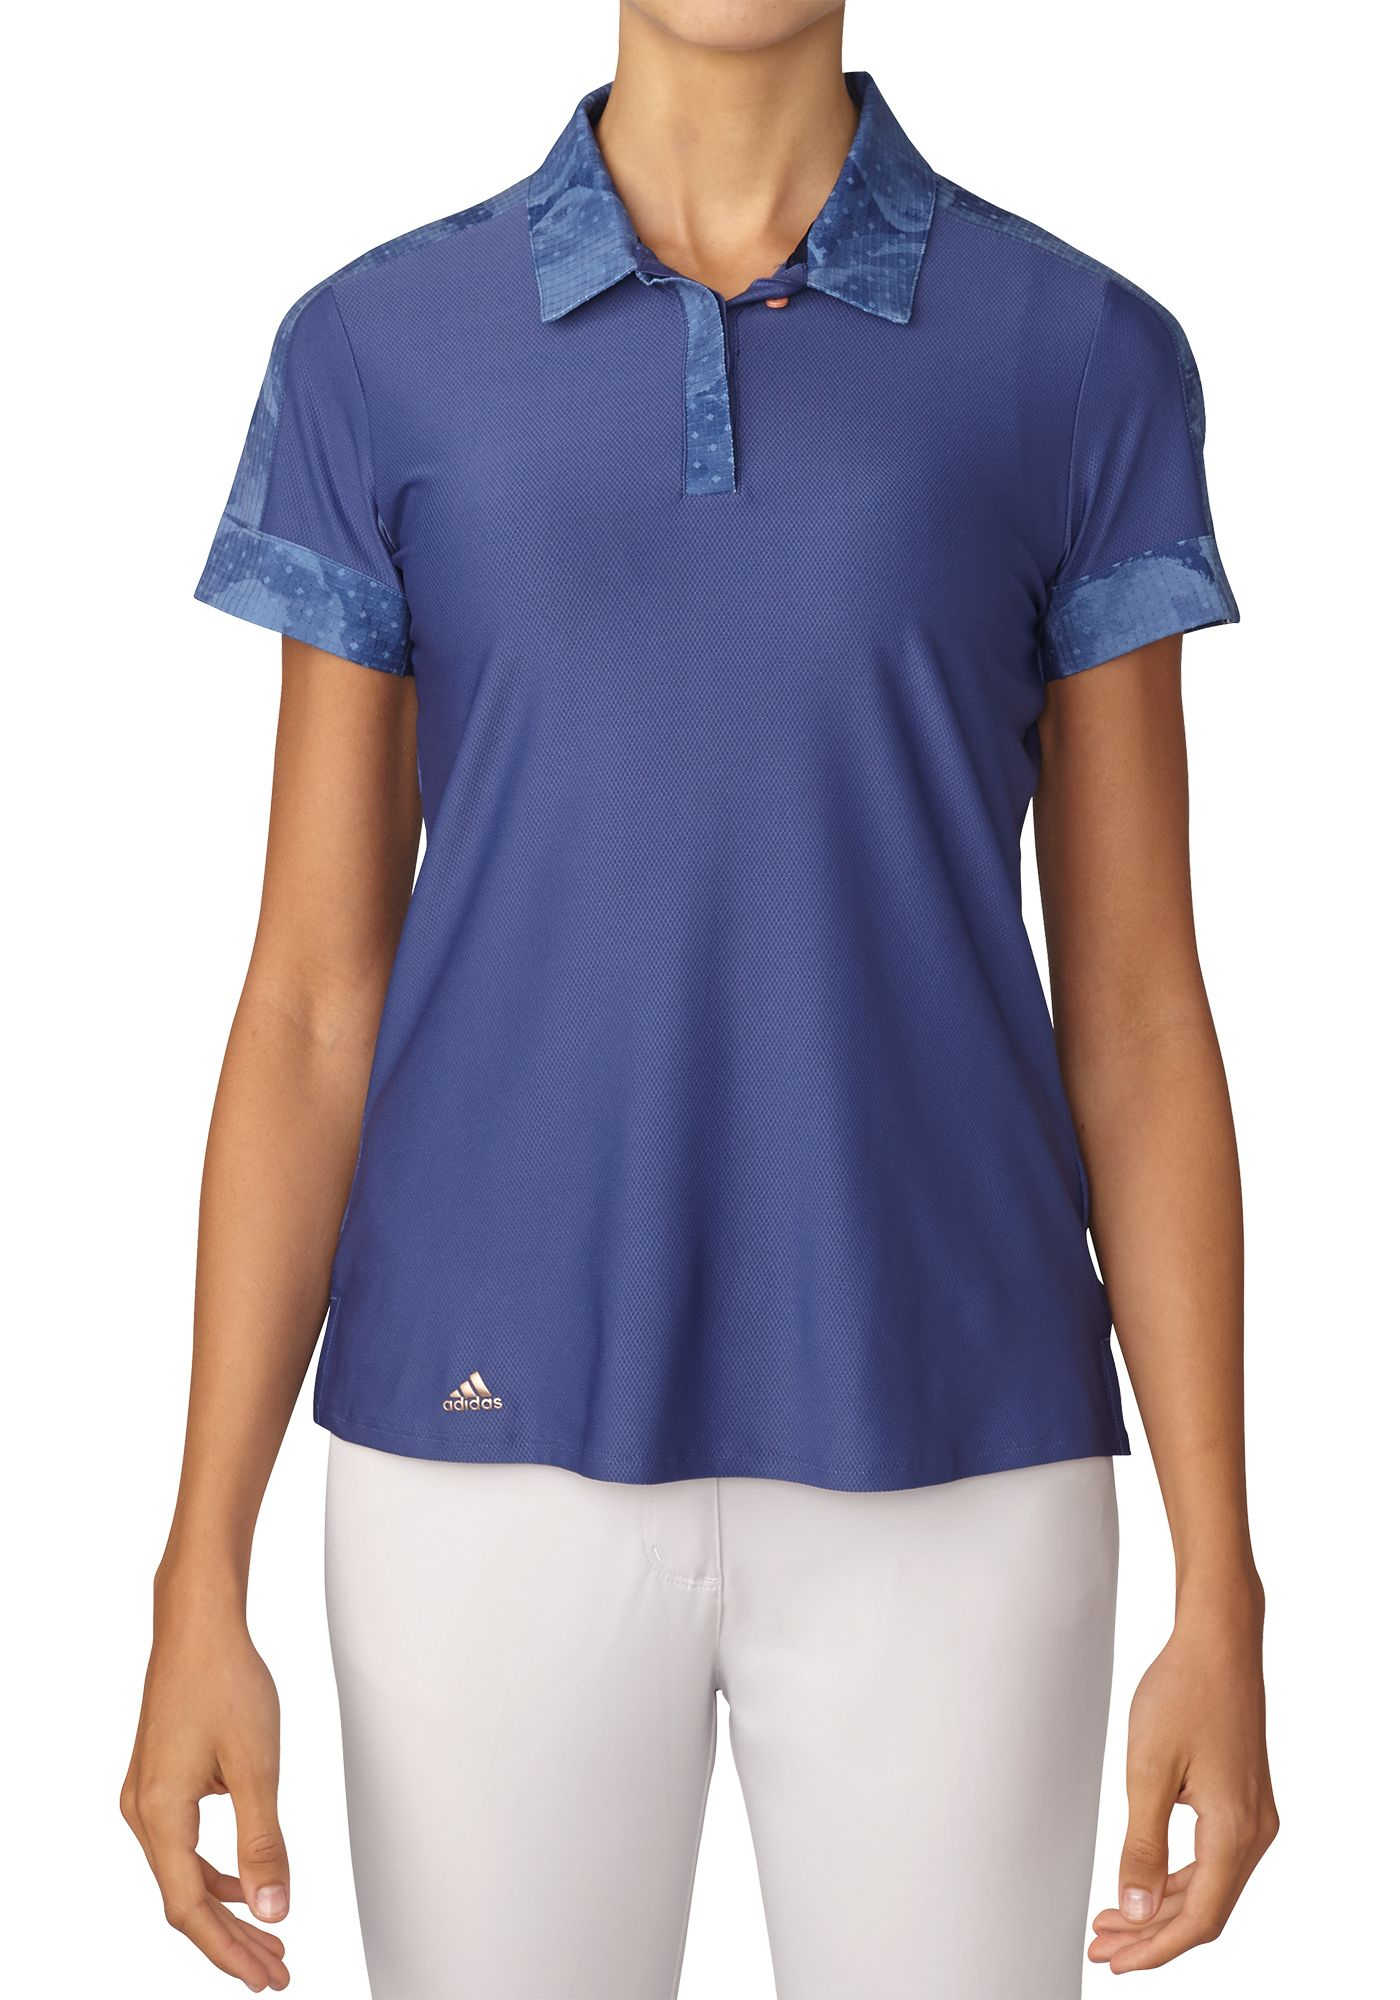 adidas Women's Sport Print Golf Polo